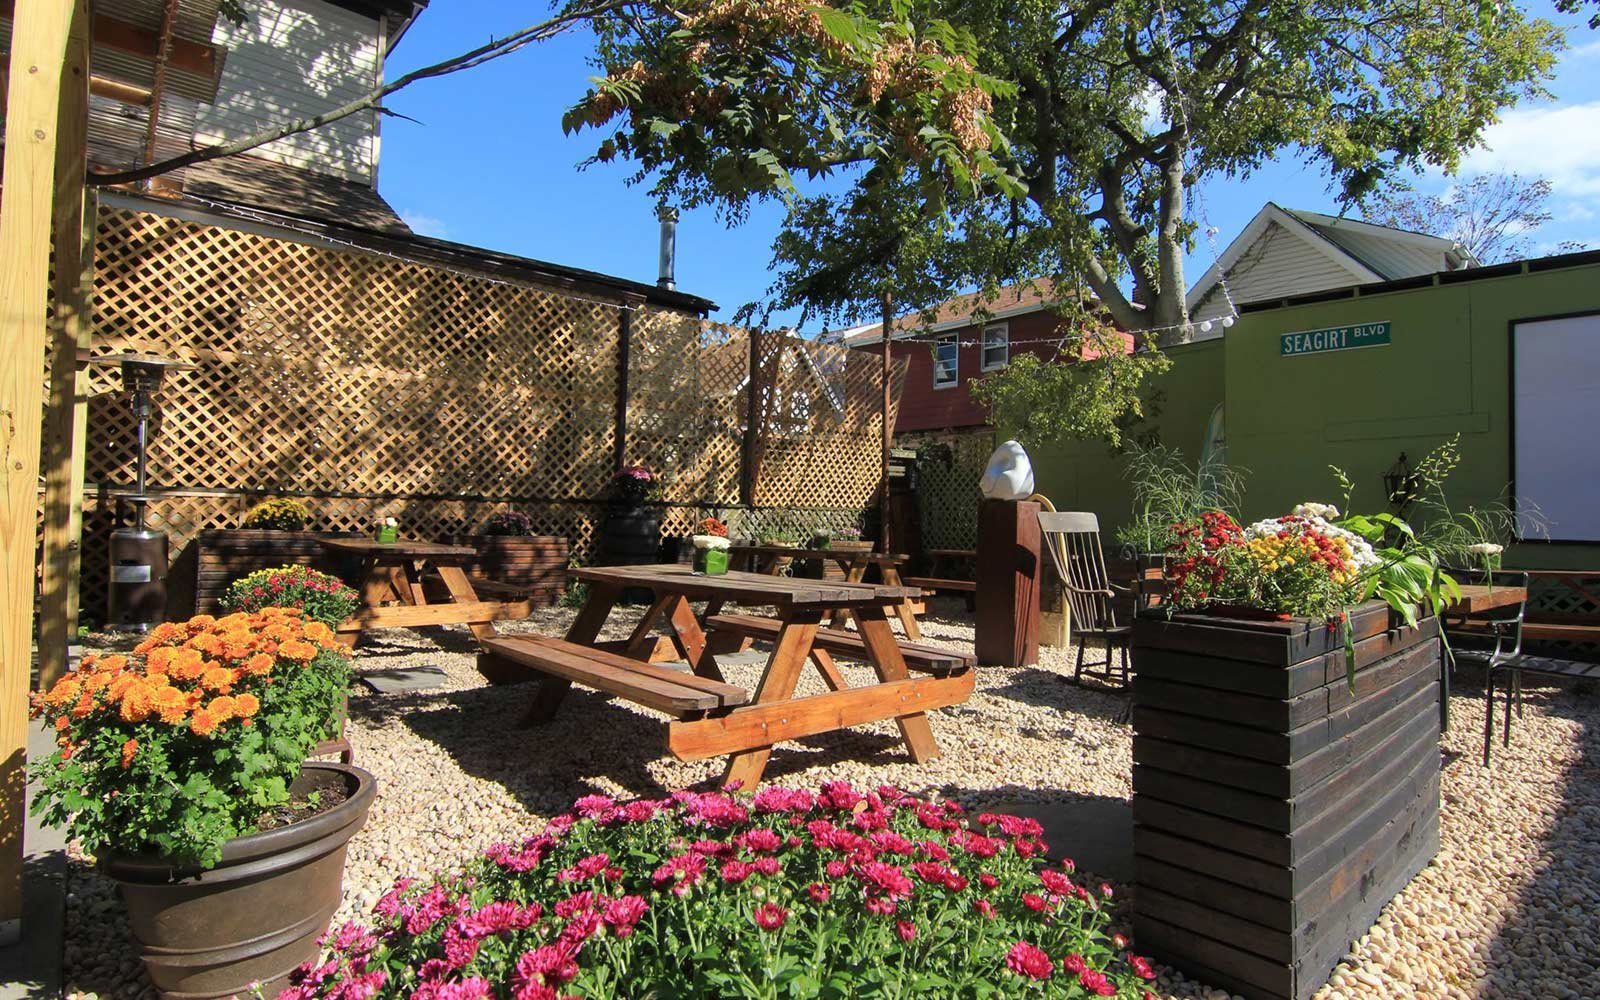 The Best Outdoor Happy Hours in New York City | Travel + Leisure